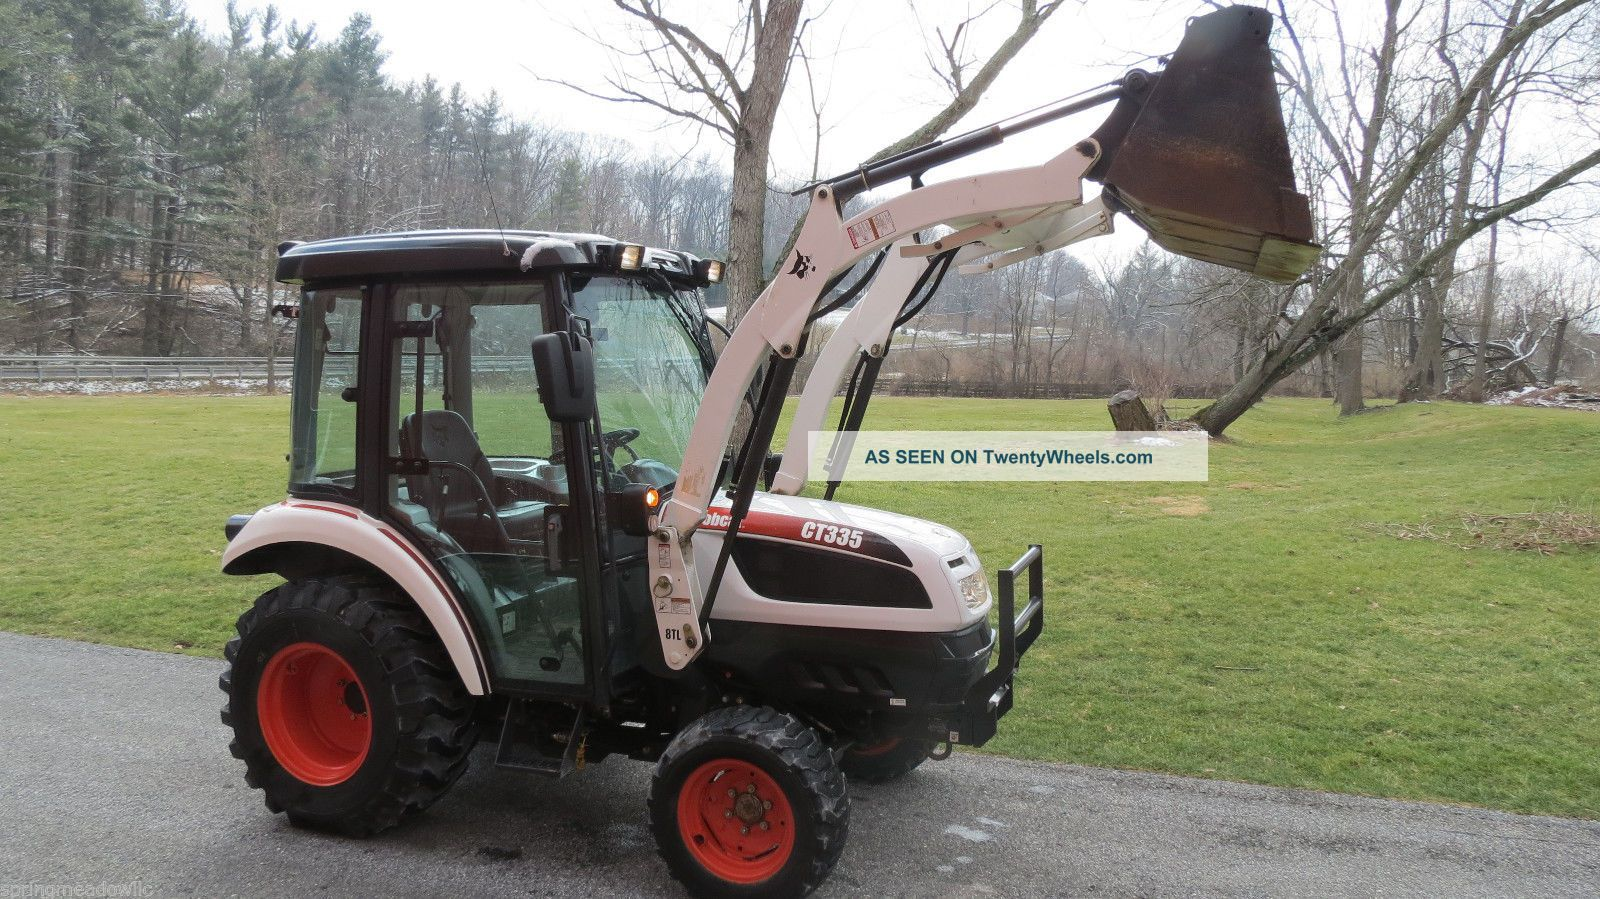 2012 Bobcat Ct335 4x4 Compact Tractor W/ Loader & Cab Hydro Heat A/c